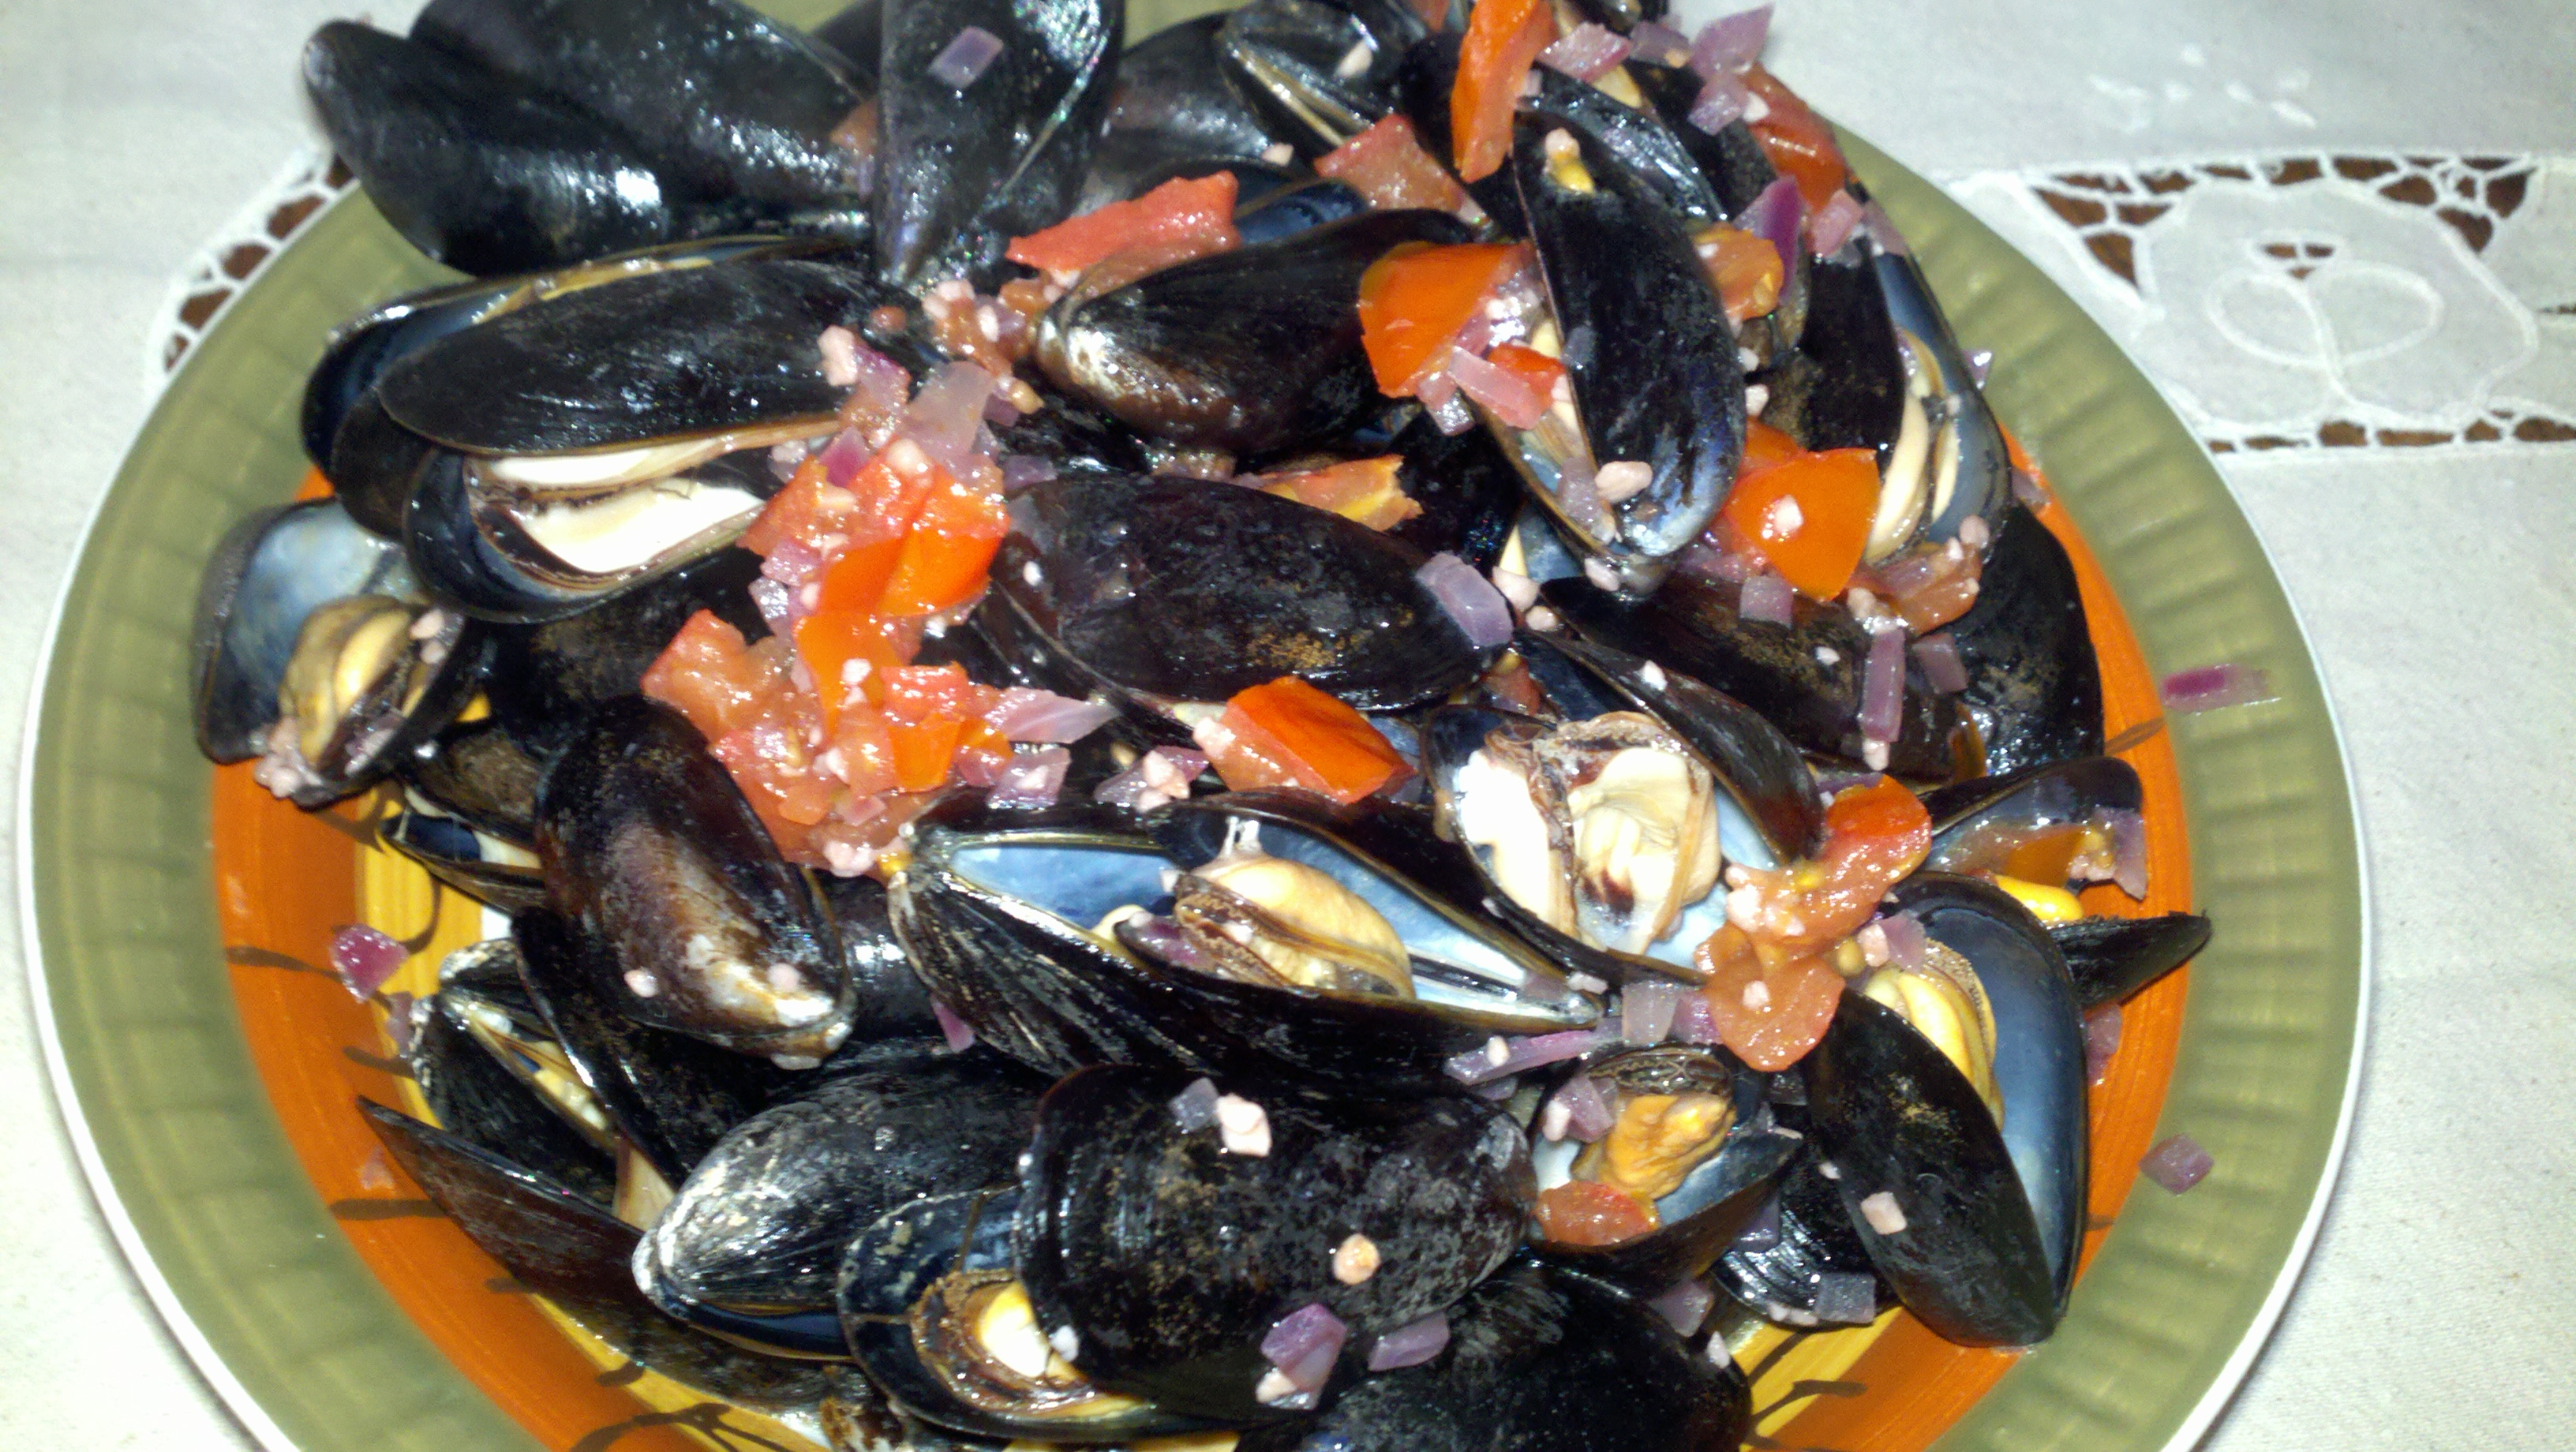 medford, ma :: mussels steamed in red wine with garlic, tomatoes, onions and olive oil. five minutes to cook, less than five bucks for ingredients. yum.